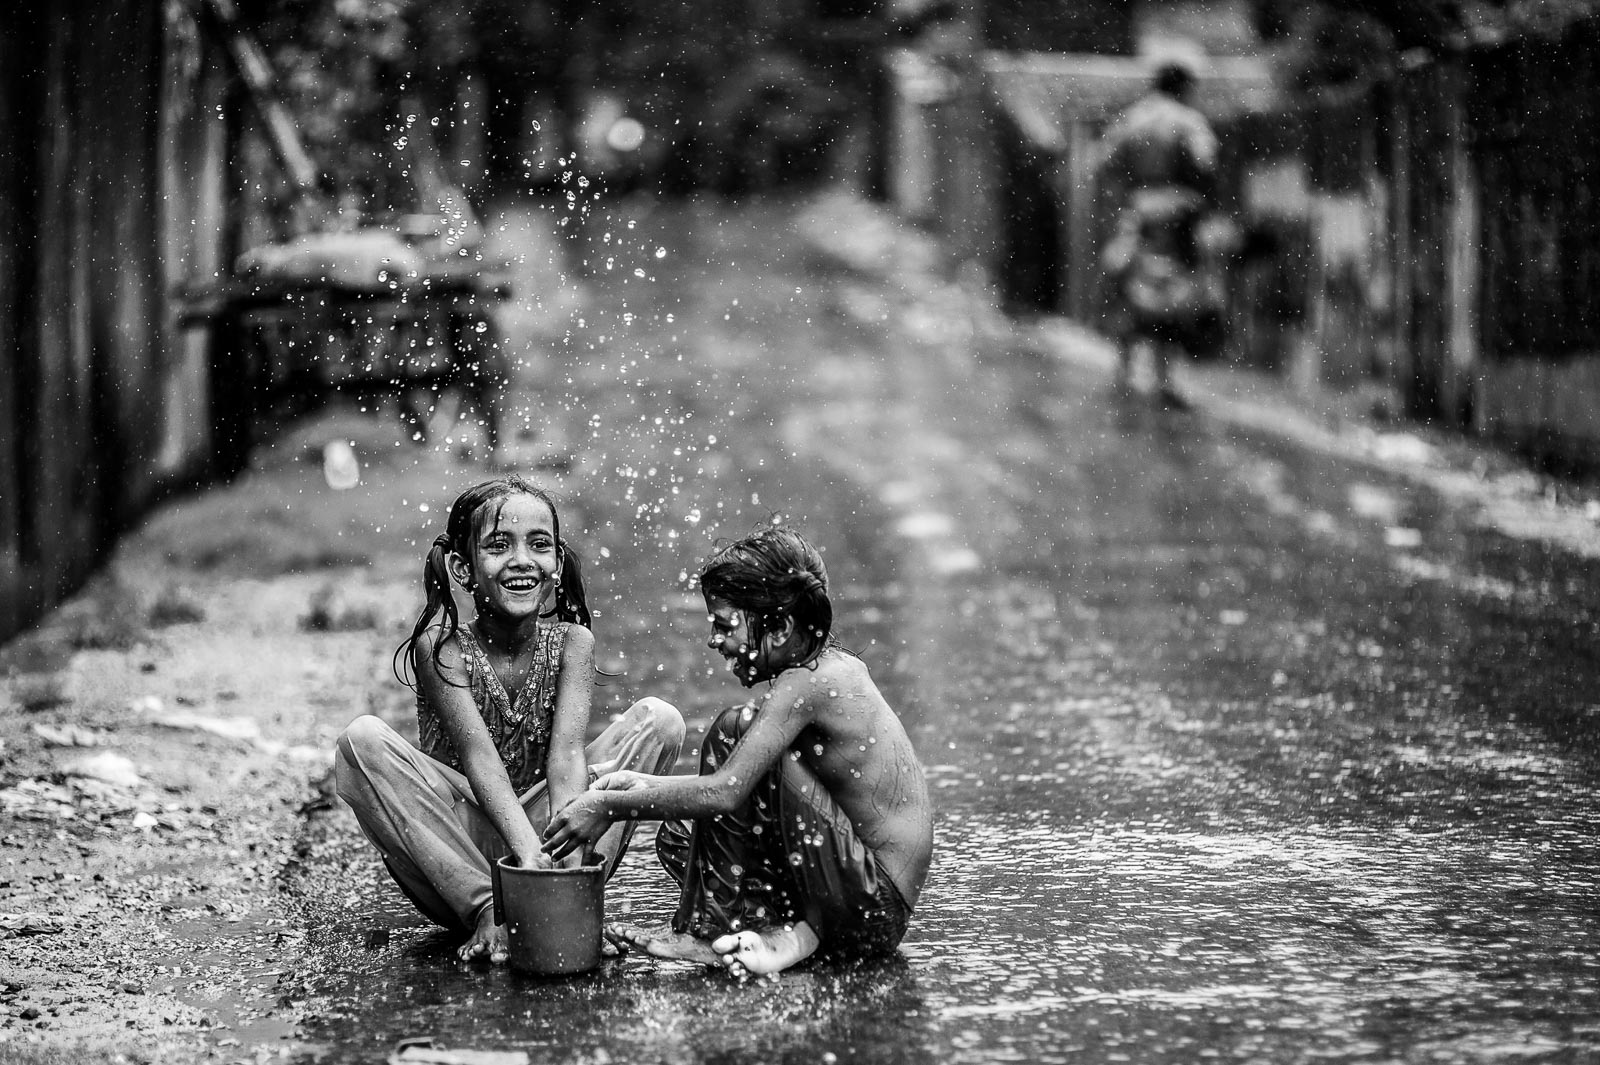 Monsoon Splash by Ata Mohammad Adnan